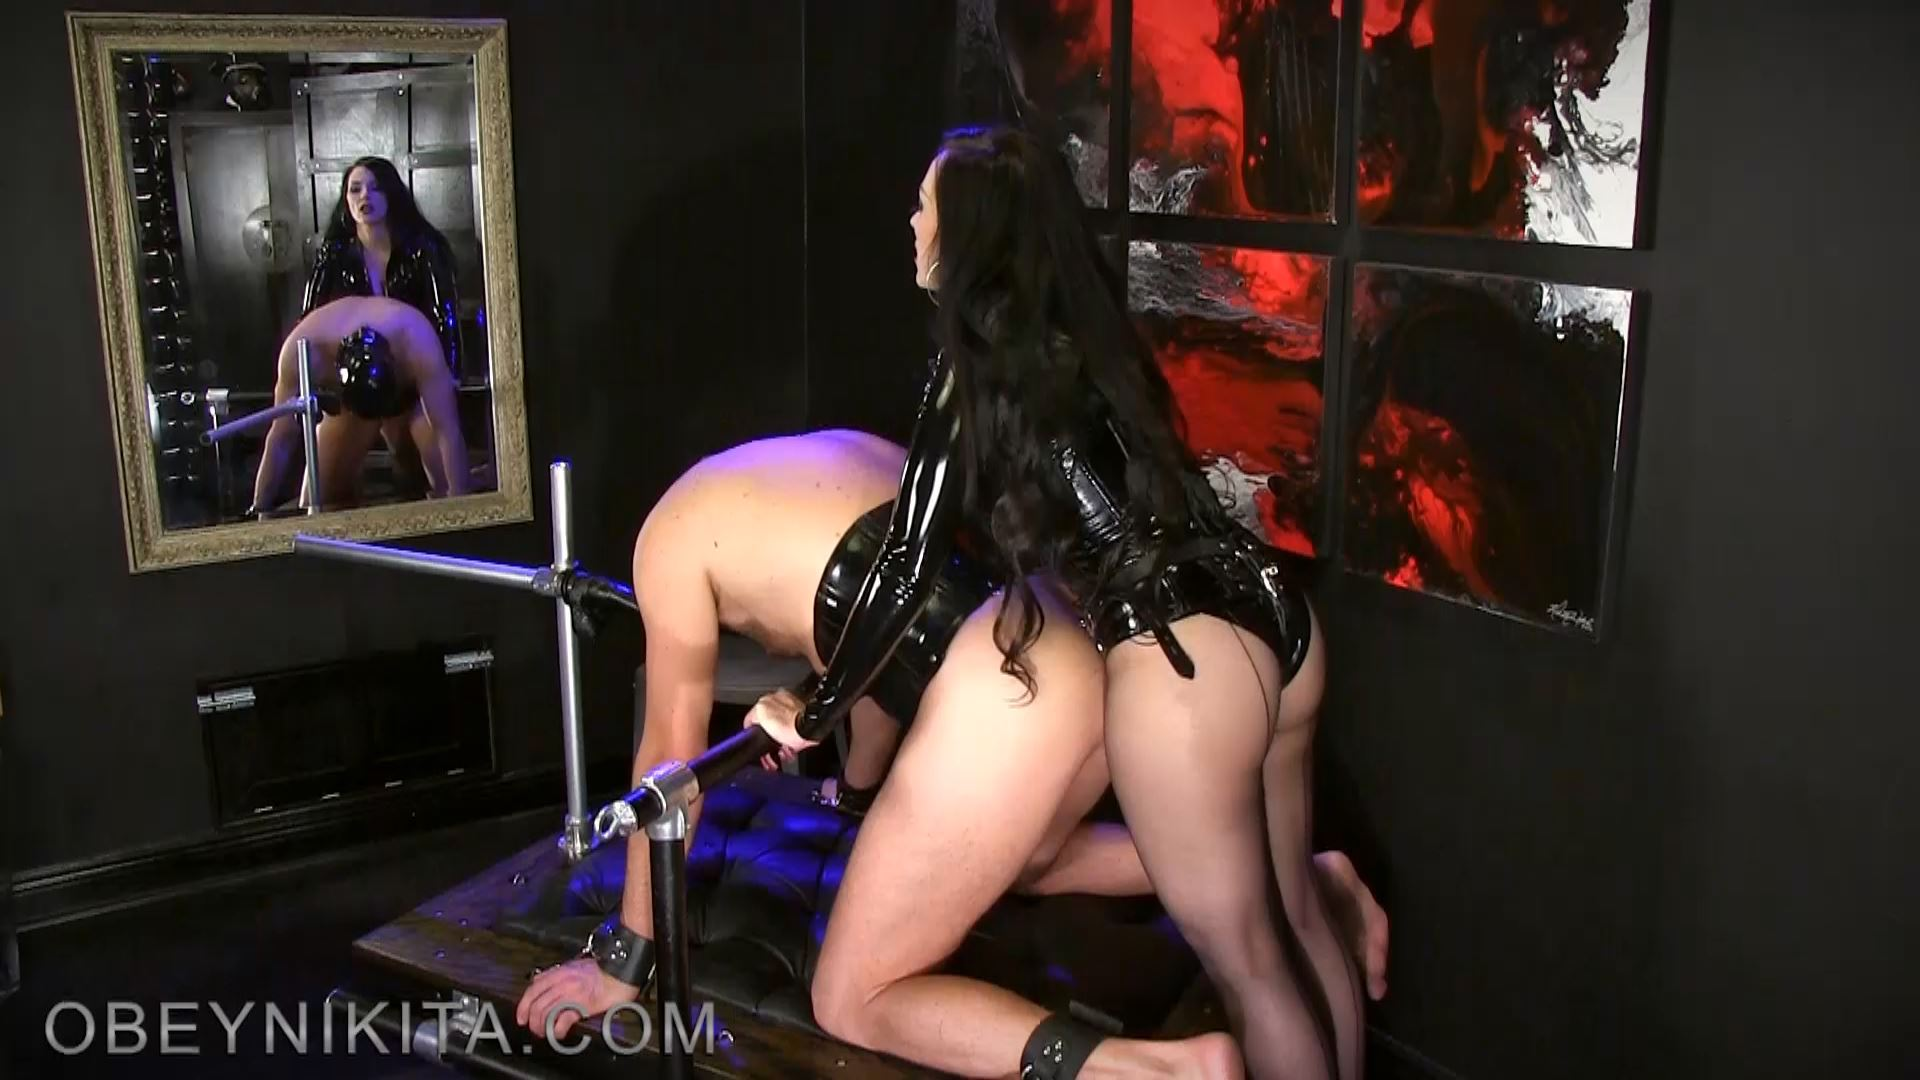 TWO HOLED WHORE. FEATURING: MISTRESS NIKITA - OBEYNIKITA - FULL HD/1080p/MP4